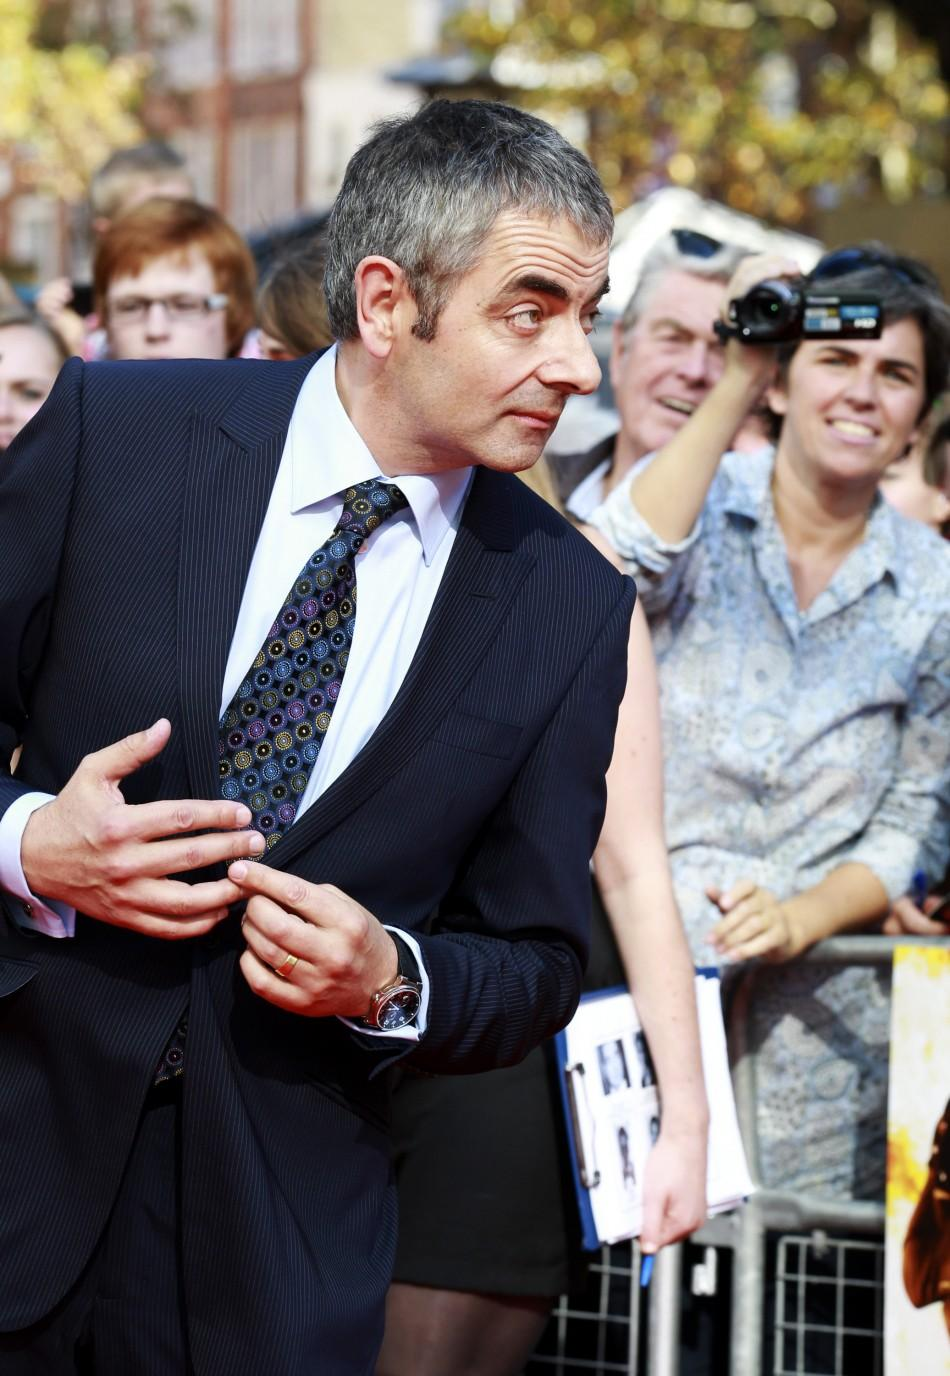 Actor Rowan Atkinson arrives for the UK premiere of Johnny English Reborn, at the Empire Leicester Square in central London